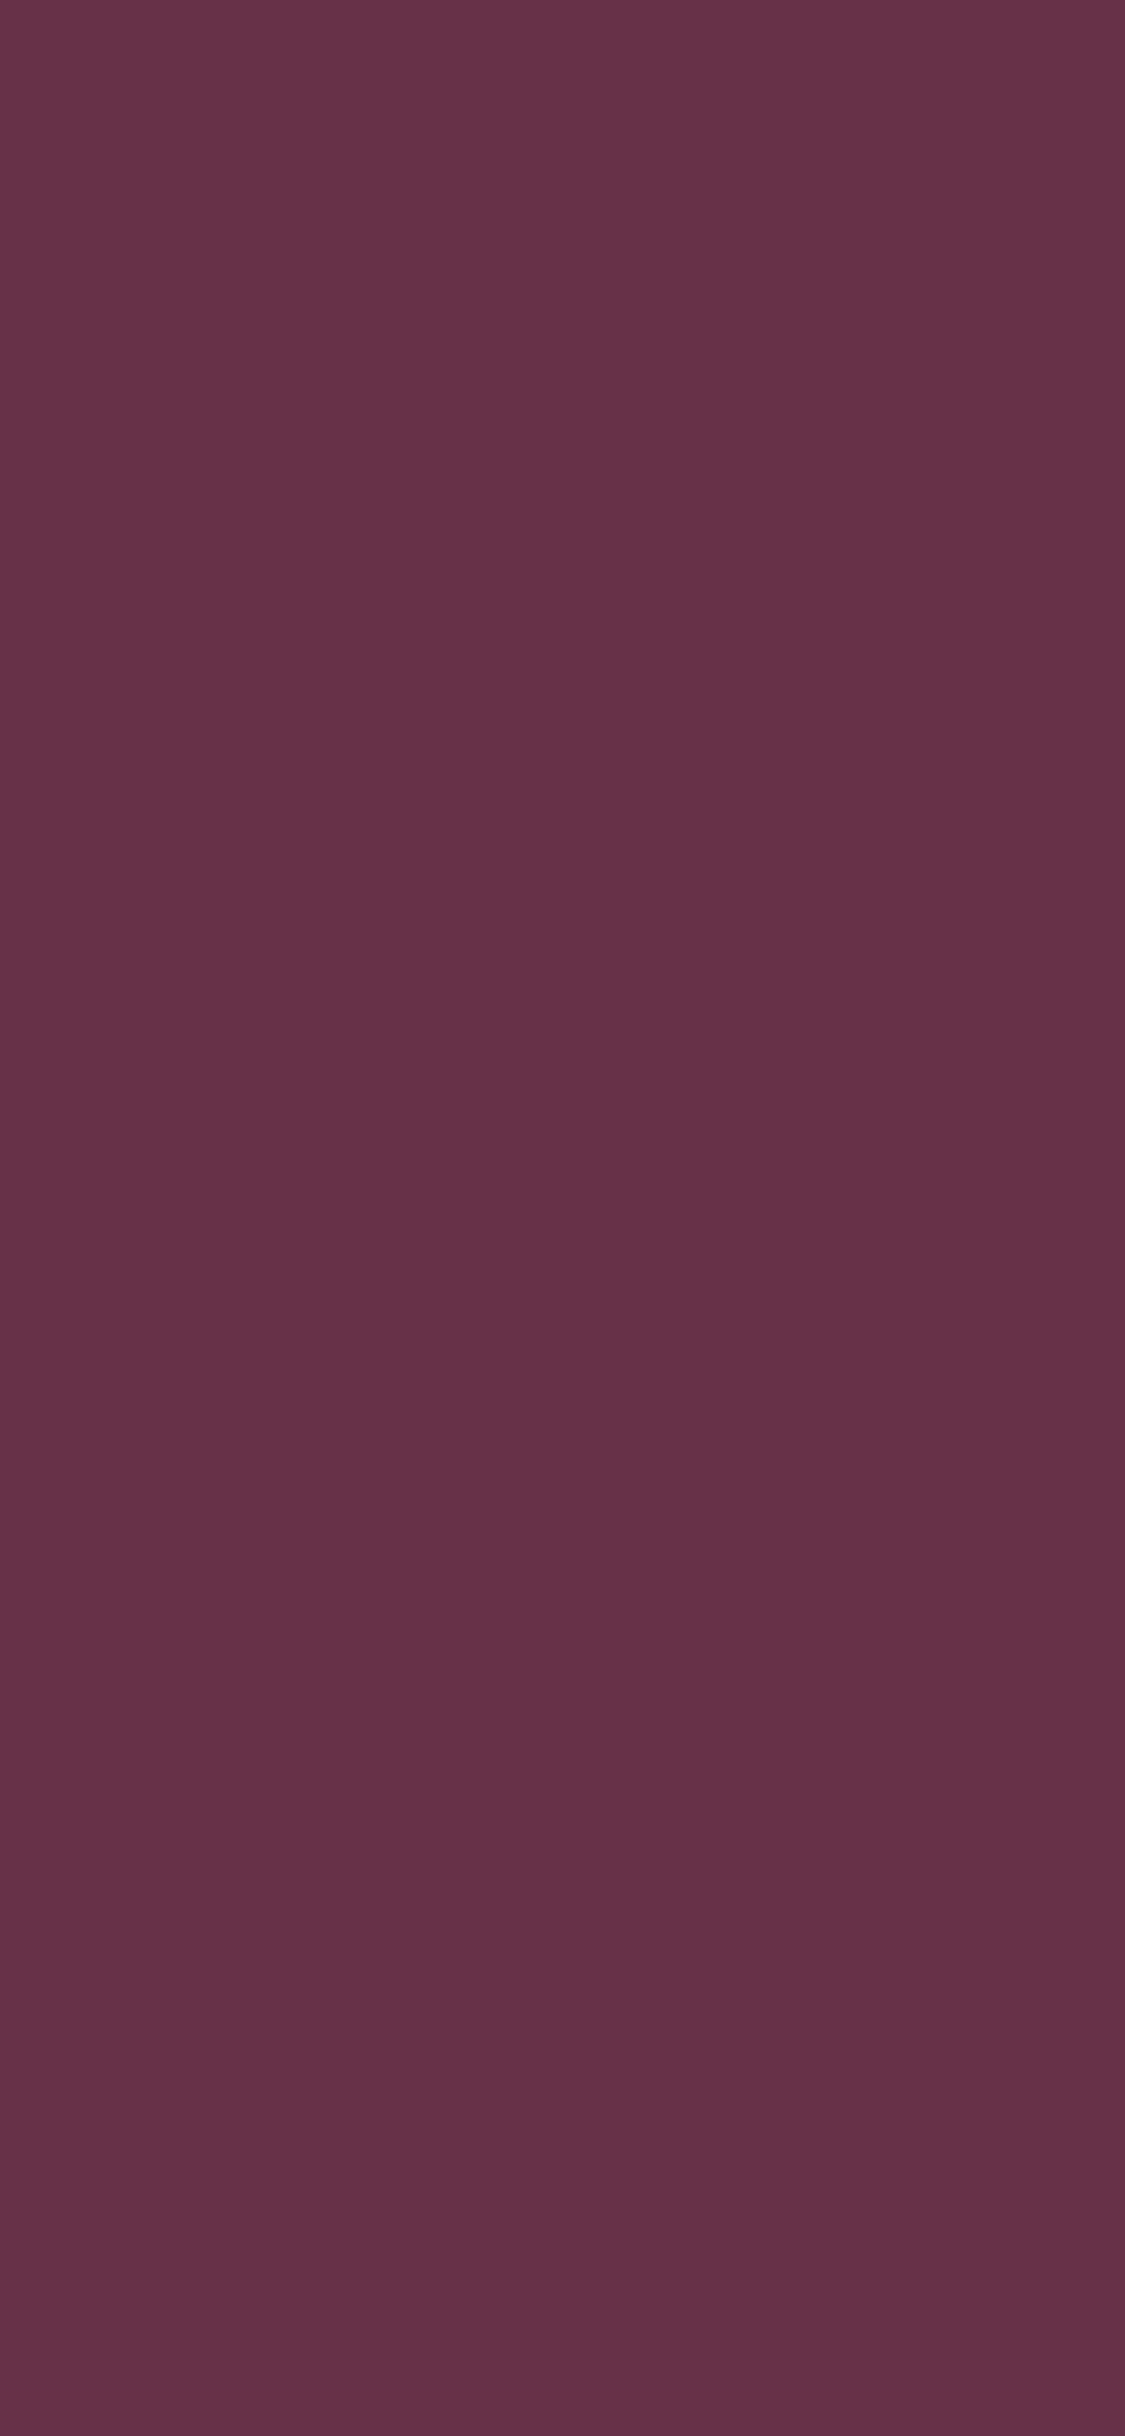 1125x2436 Old Mauve Solid Color Background